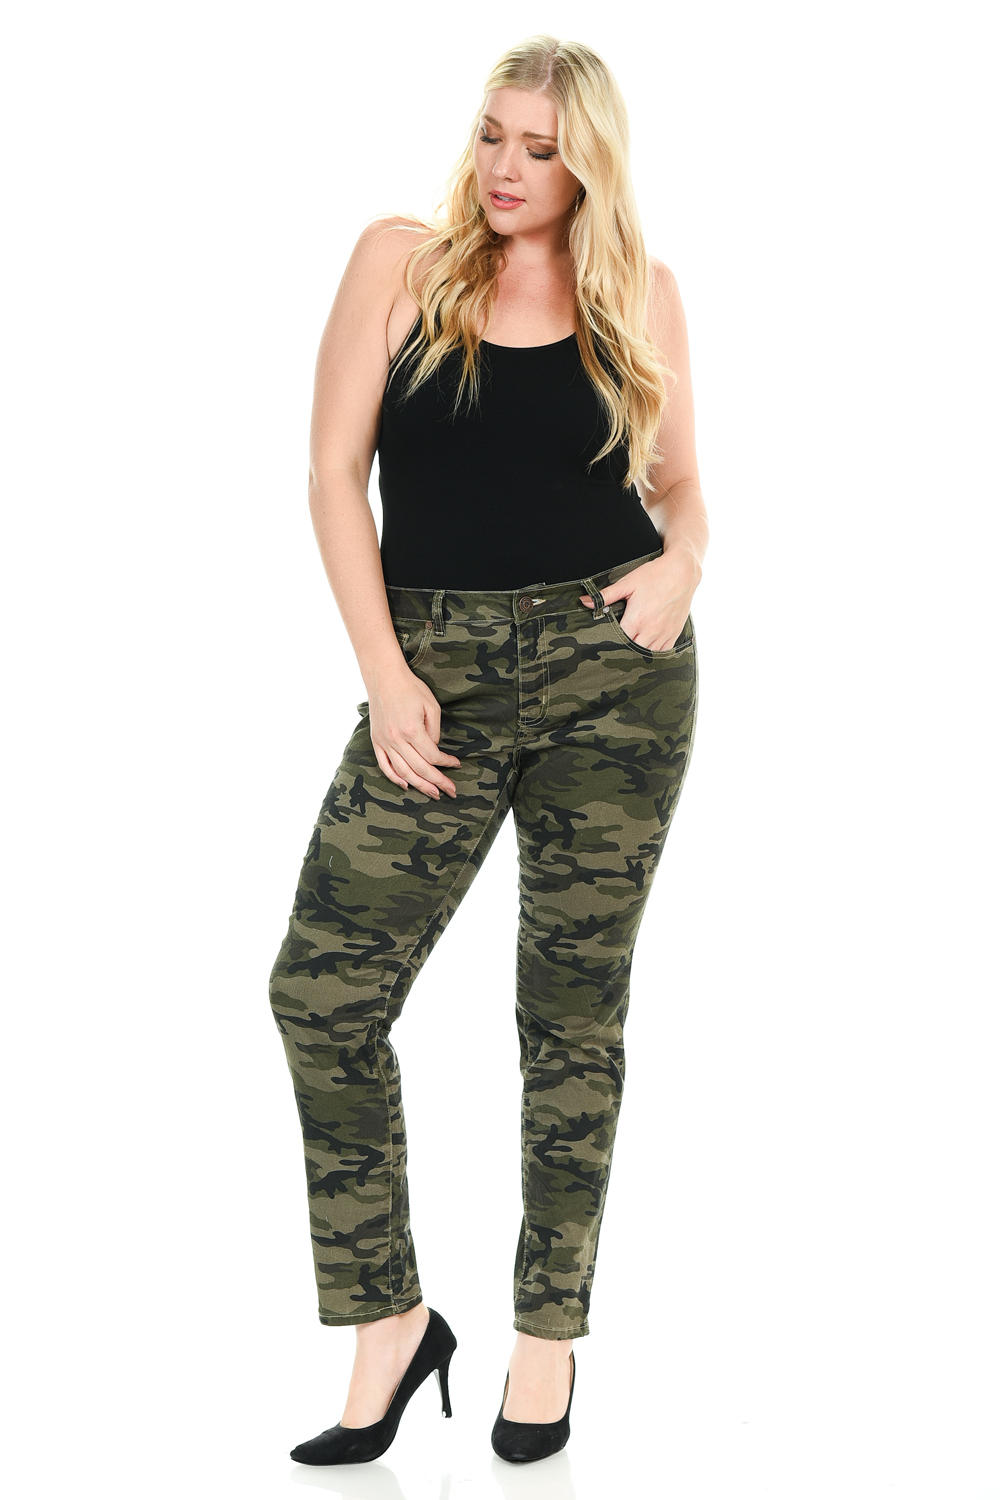 Sweet Look Premium Edition Women's Jeans - Plus Size - High Waist - Skinny - Style CS009